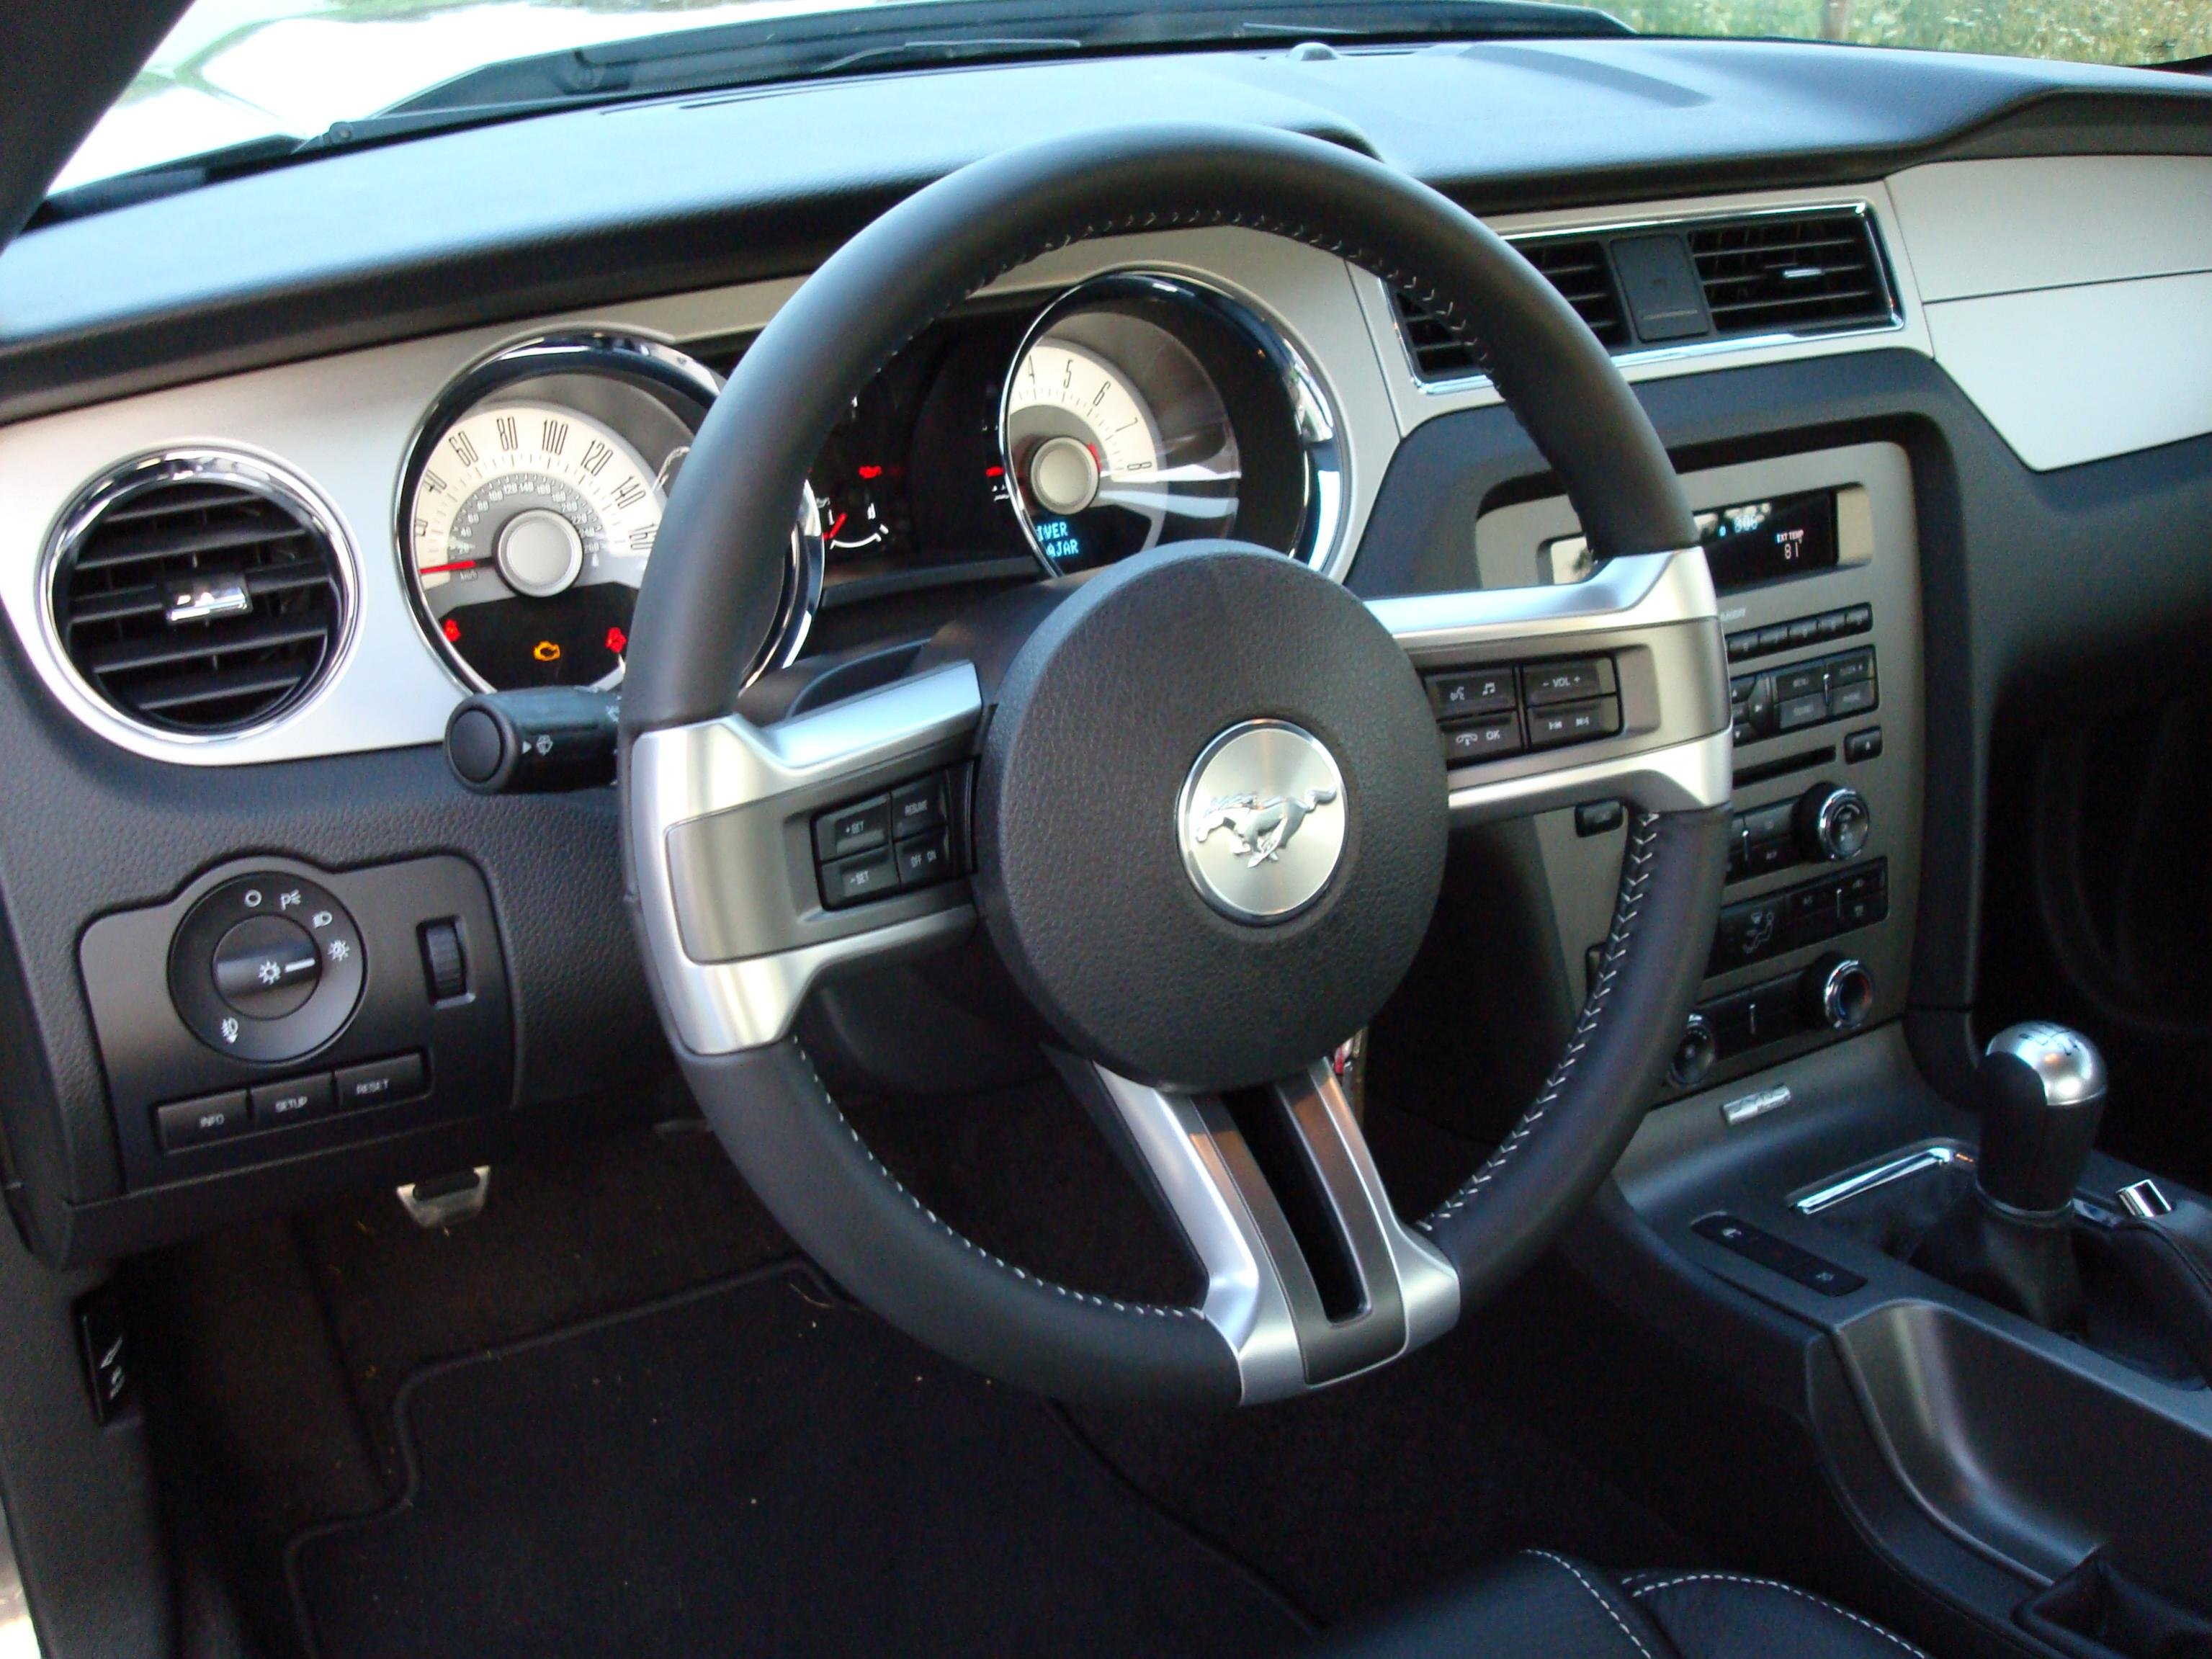 Dsg Mustang >> Post your 2011 Mustang interior pics here please... - Ford Mustang Forum